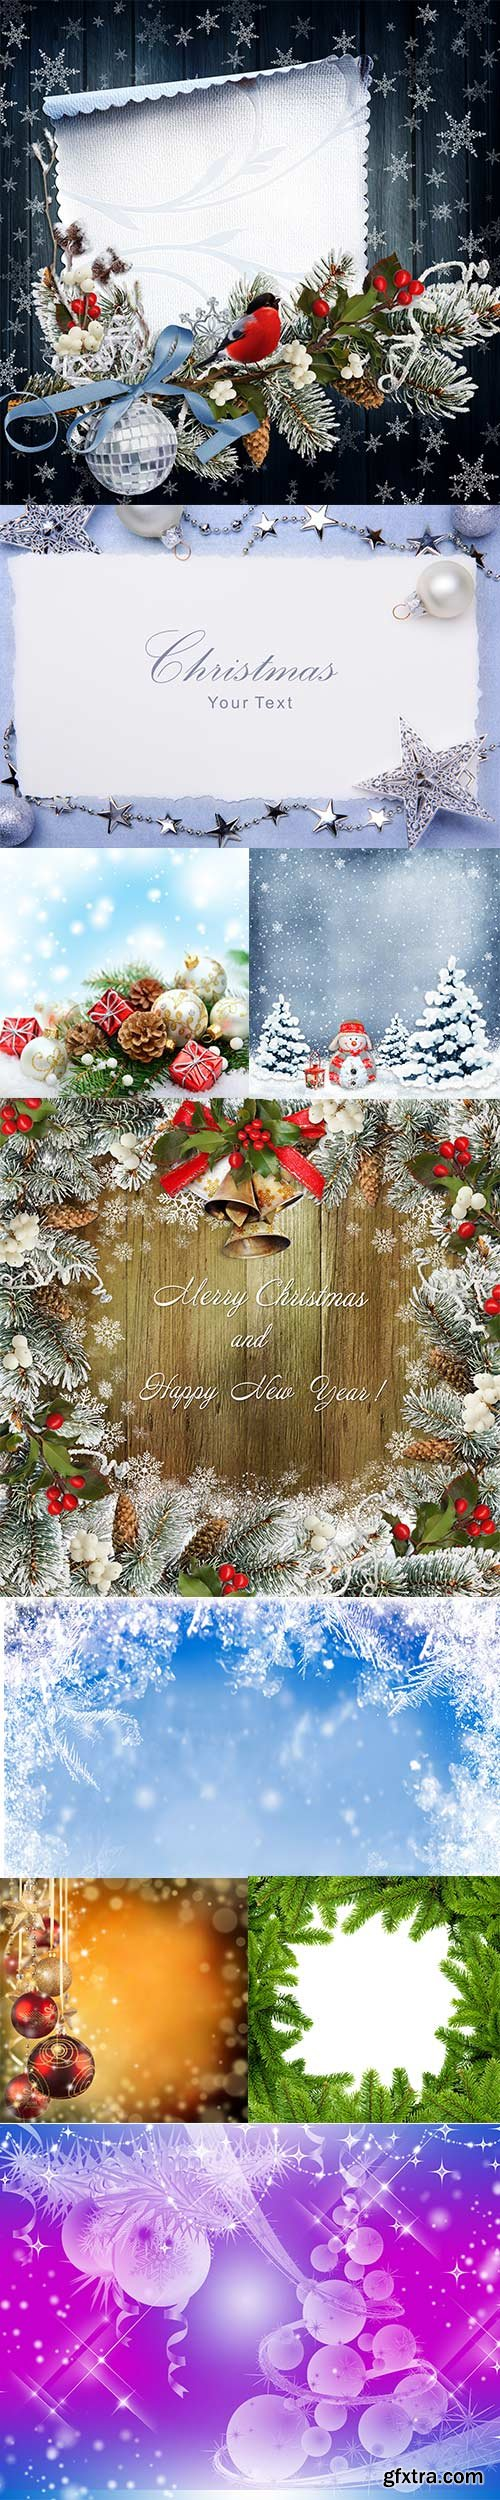 Christmas winter backgrounds 3